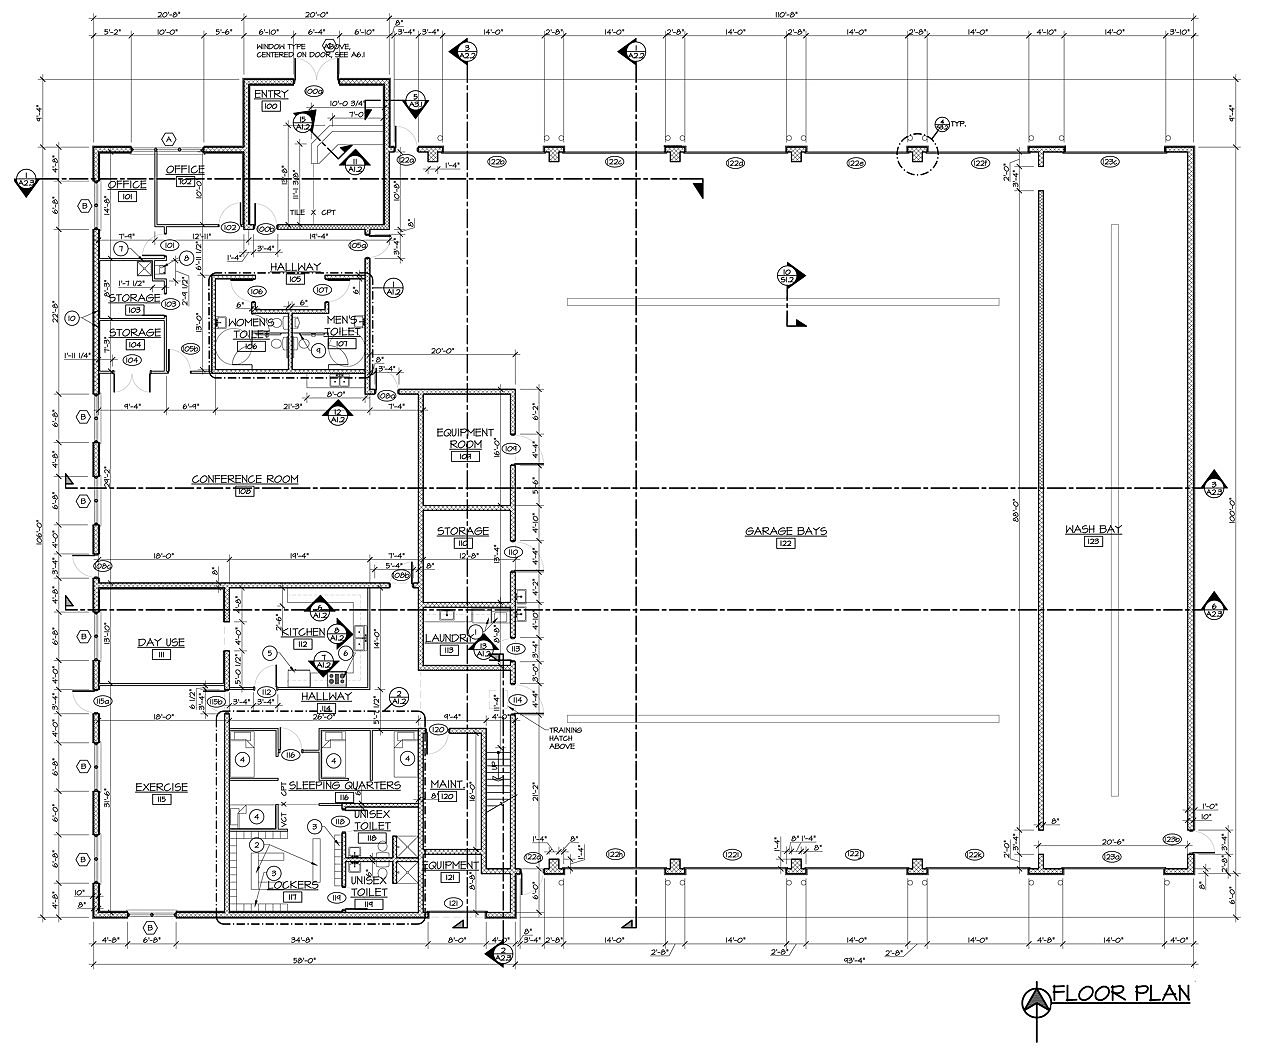 1200 Square Feet 3 Bedrooms 1 Bathroom Cottage House Plans 0 Garage 30512 further 874 Square Feet 3 Bedroom 1 5 Bathroom 0 Garage Cottage 39317 furthermore Design Your Own Floor Plans Luxury House likewise Beachwalk  munity likewise Jameson House Floor Plan R. on w c floor plans